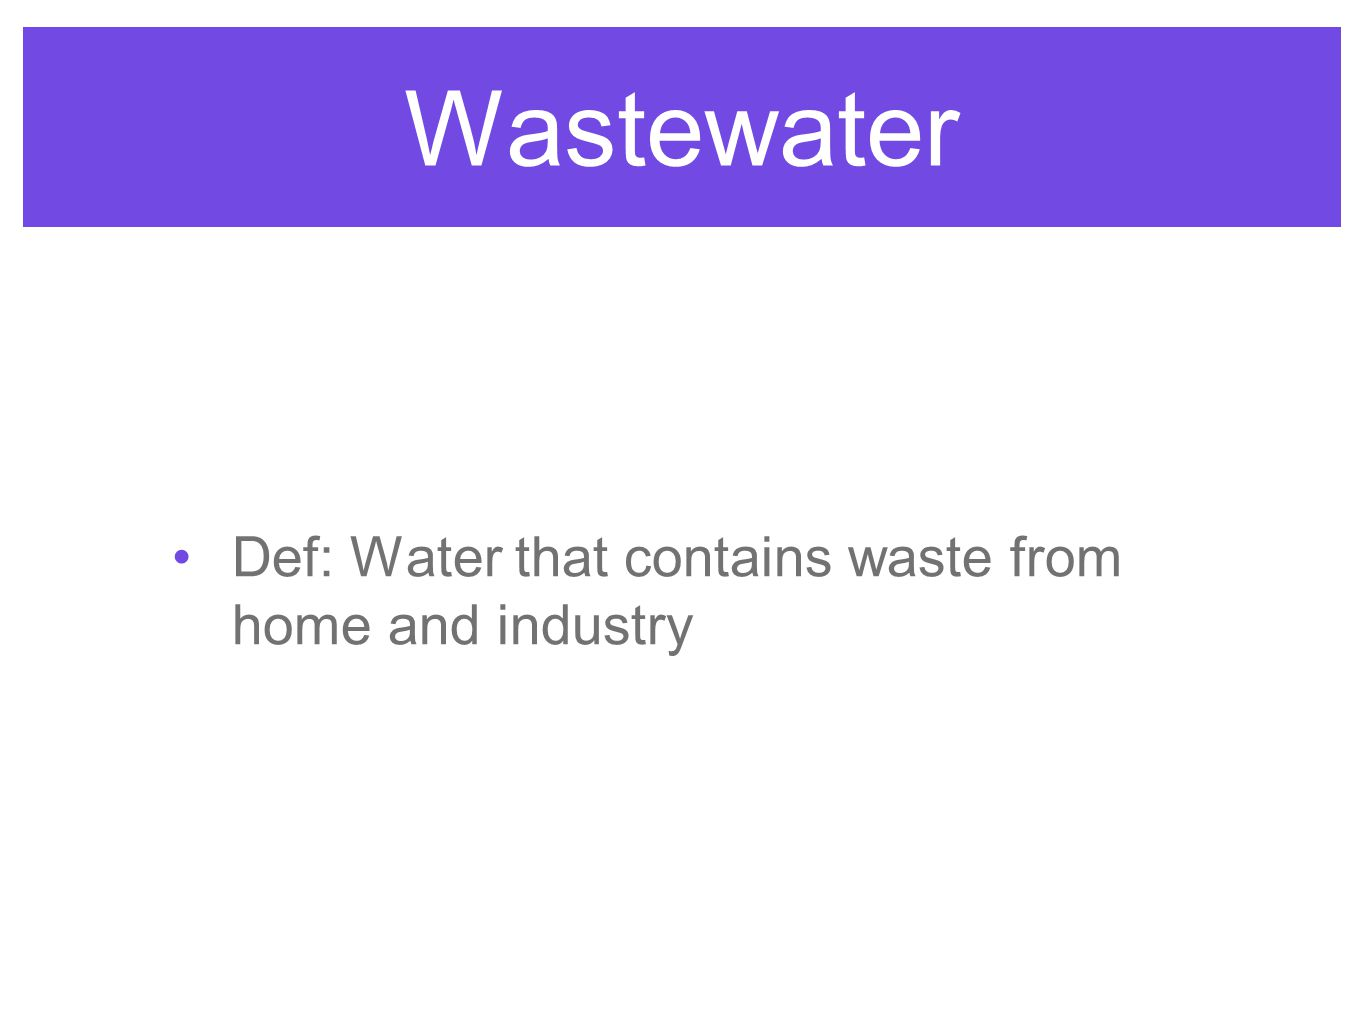 Wastewater Def: Water that contains waste from home and industry